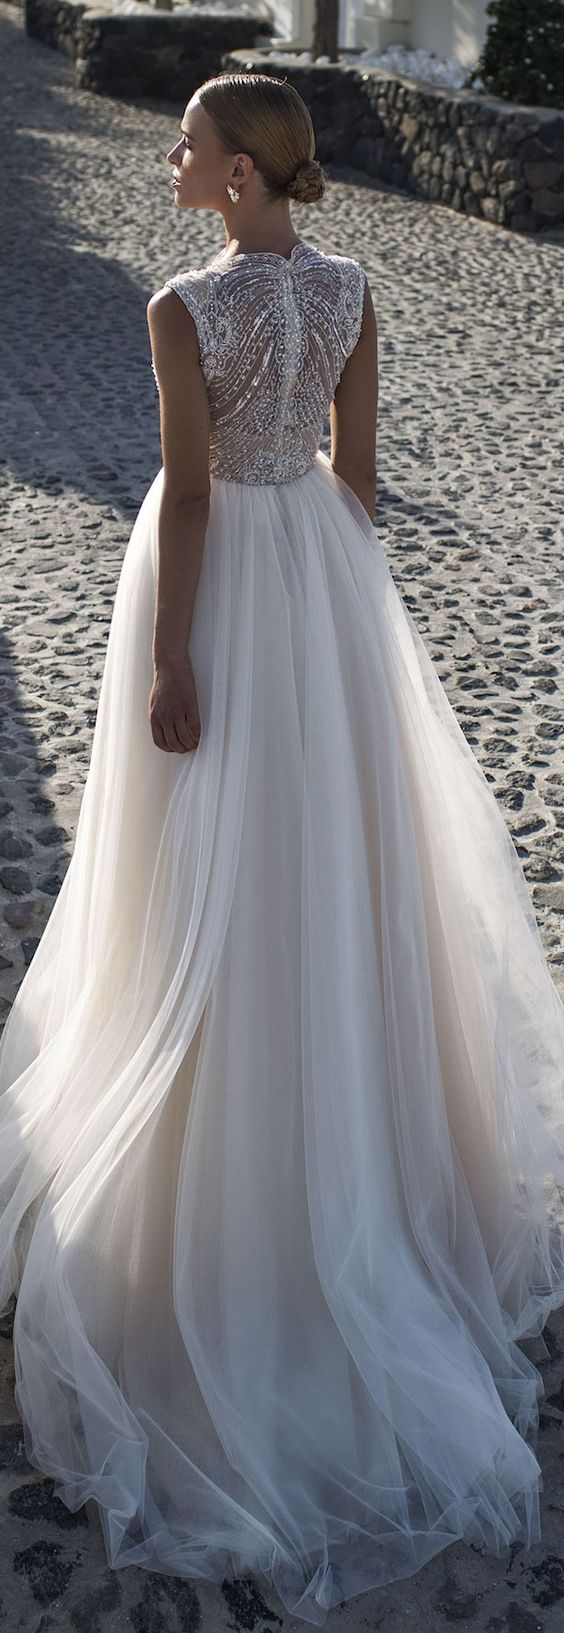 wedding_dress_szerda.jpg